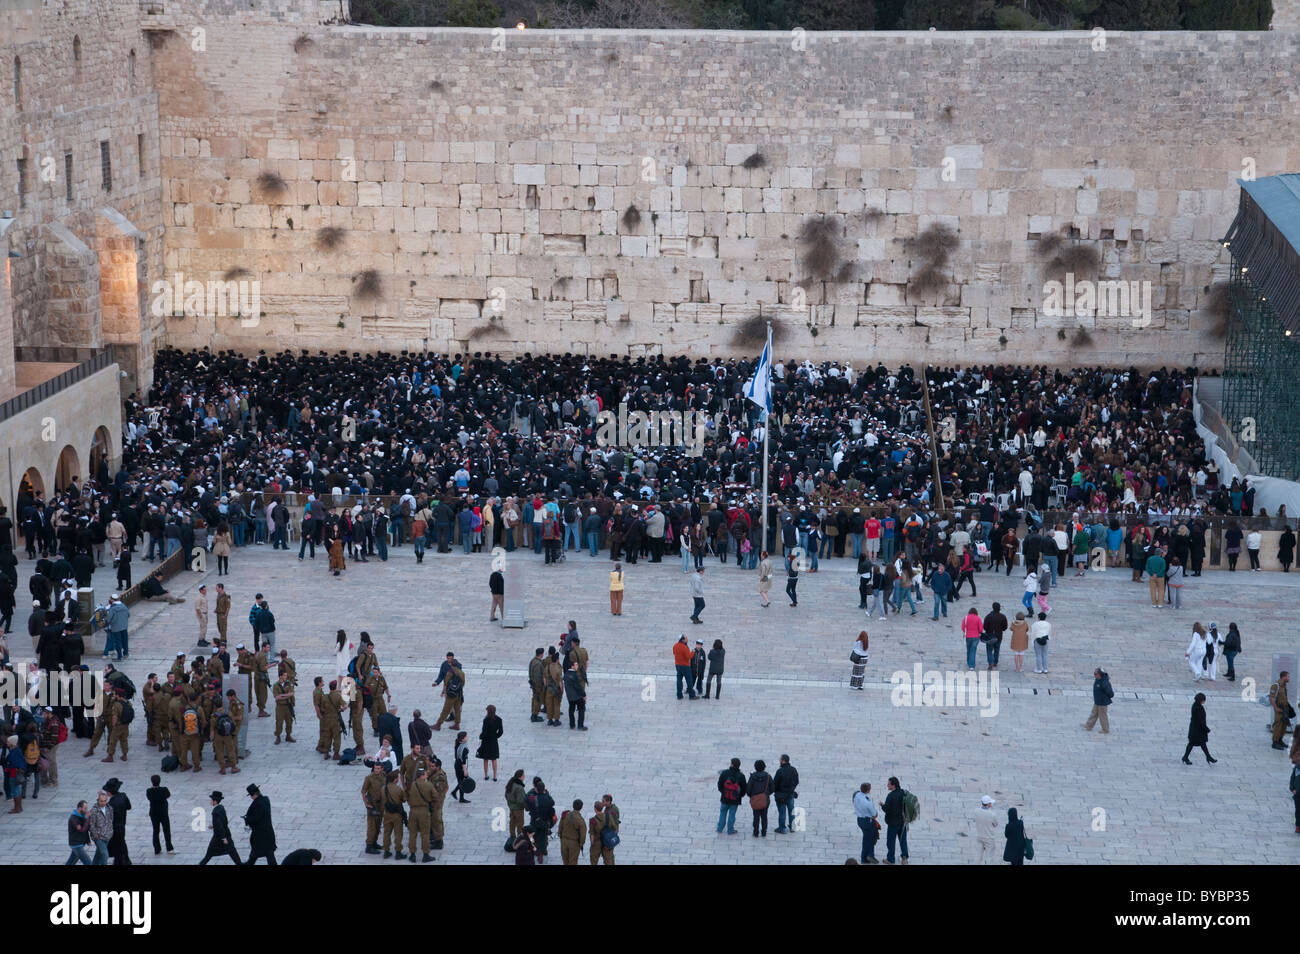 Western Wall. View from above with crowd praying. Jerusalem Old City - Stock Image